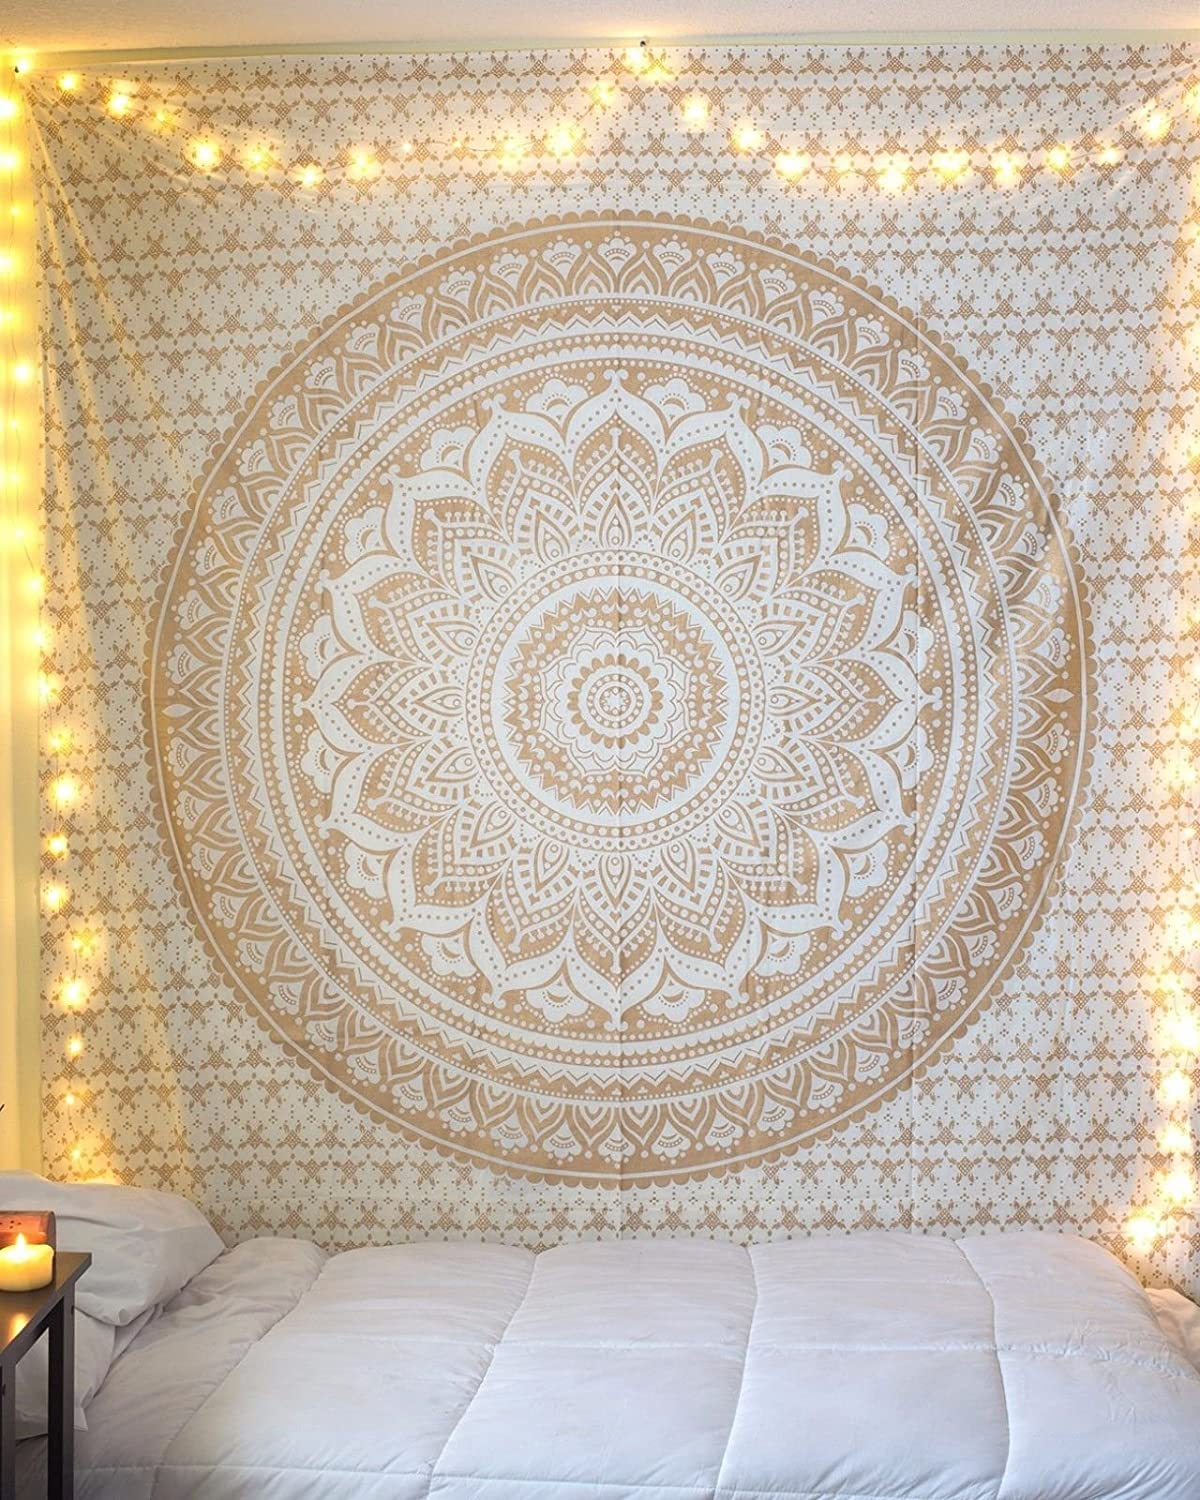 THE ART BOX Large Tapestry Queen Mandala Tapestry Gold and White Tapestries Indian Hippie Wall Hanging, Bohemian Wall Hanging, Bedspread Beach Coverlet Throw Blanket Wall Art Decor